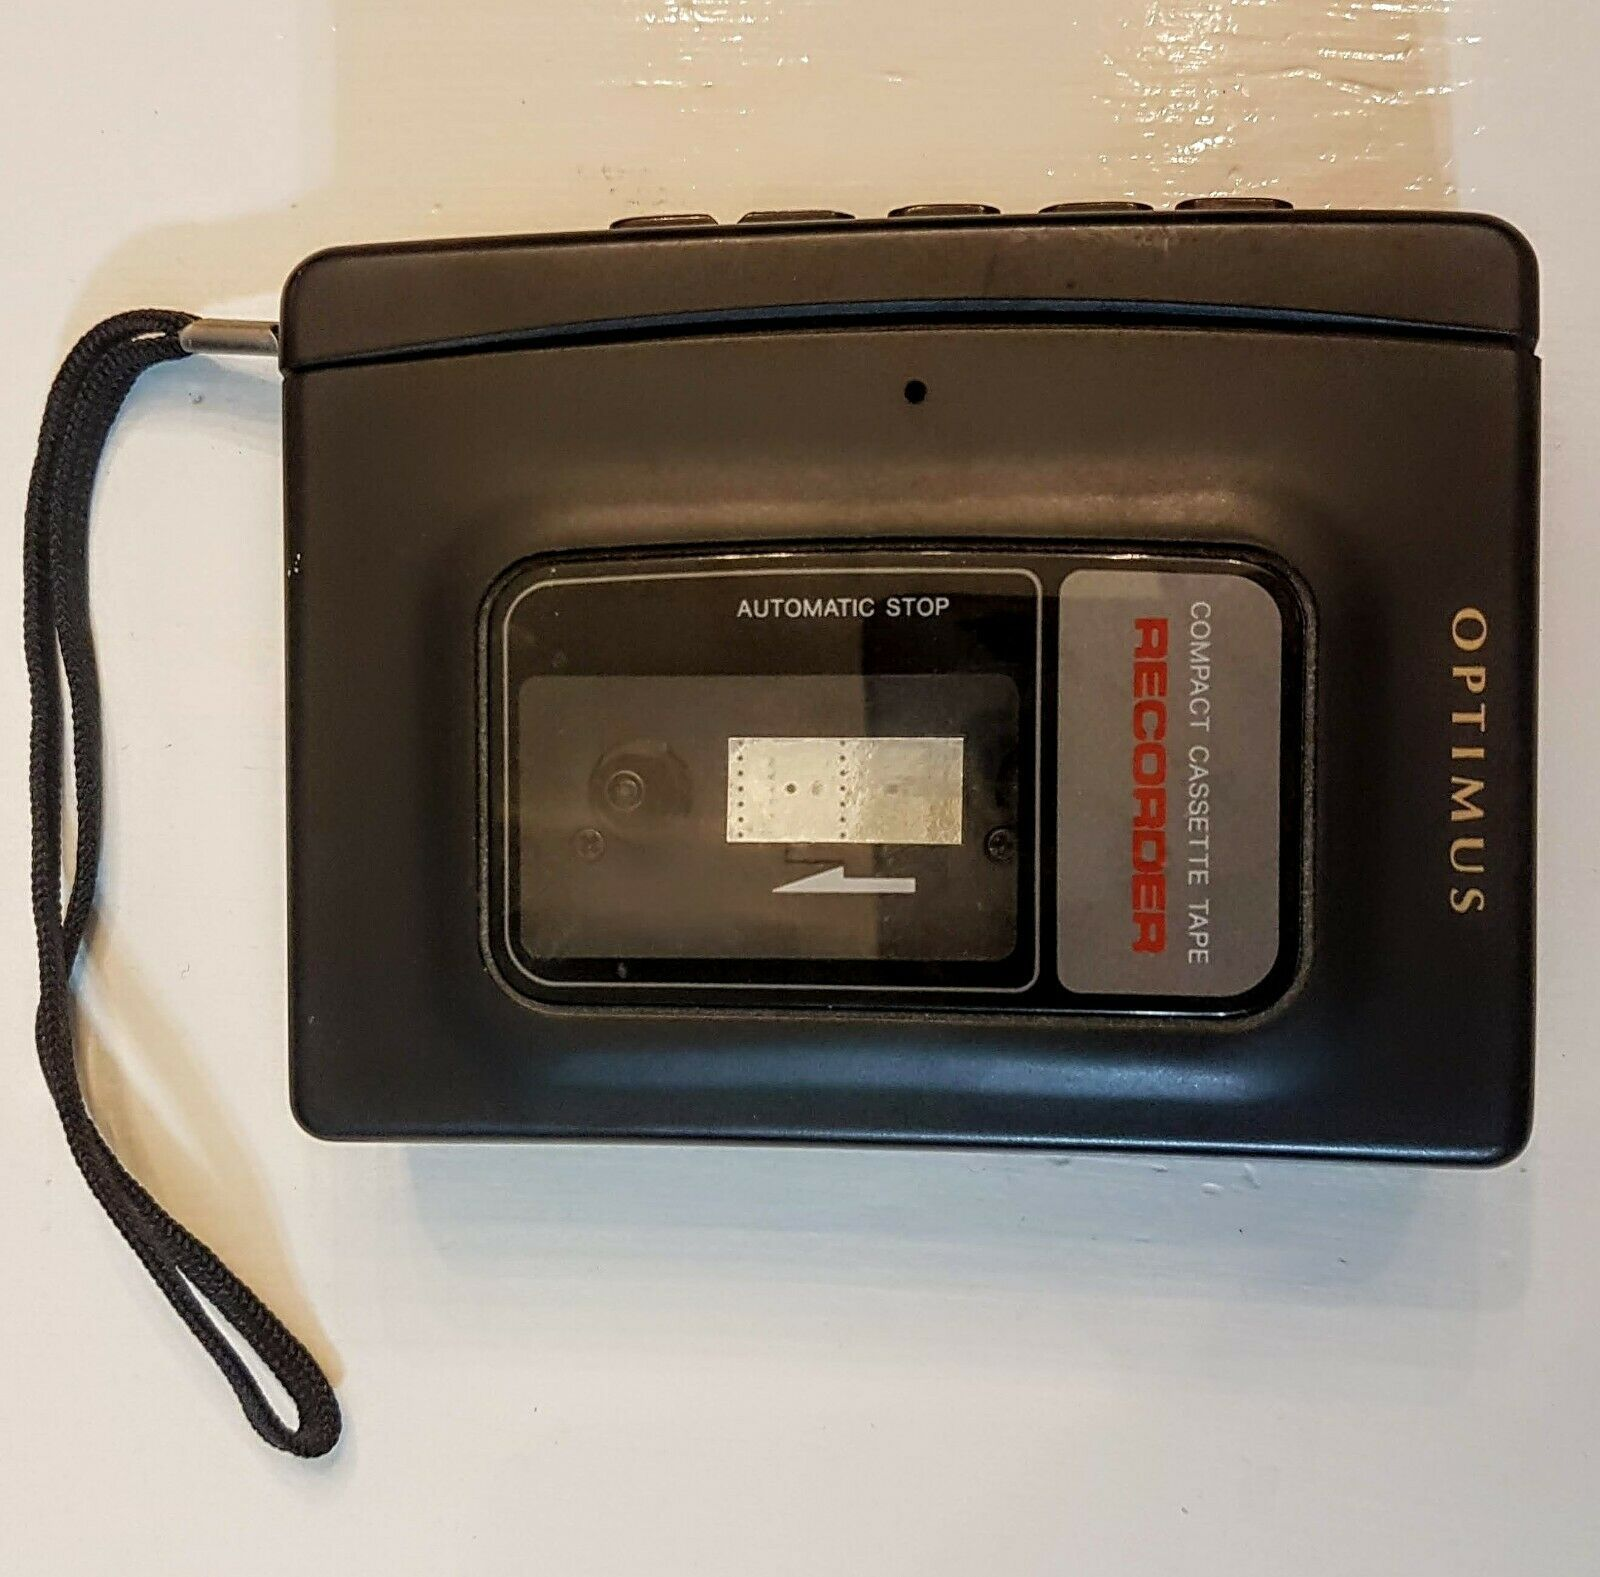 Primary image for Optimus Compact Cassette Tape Recorder Radio Shack Walkman Style CTR-105 works